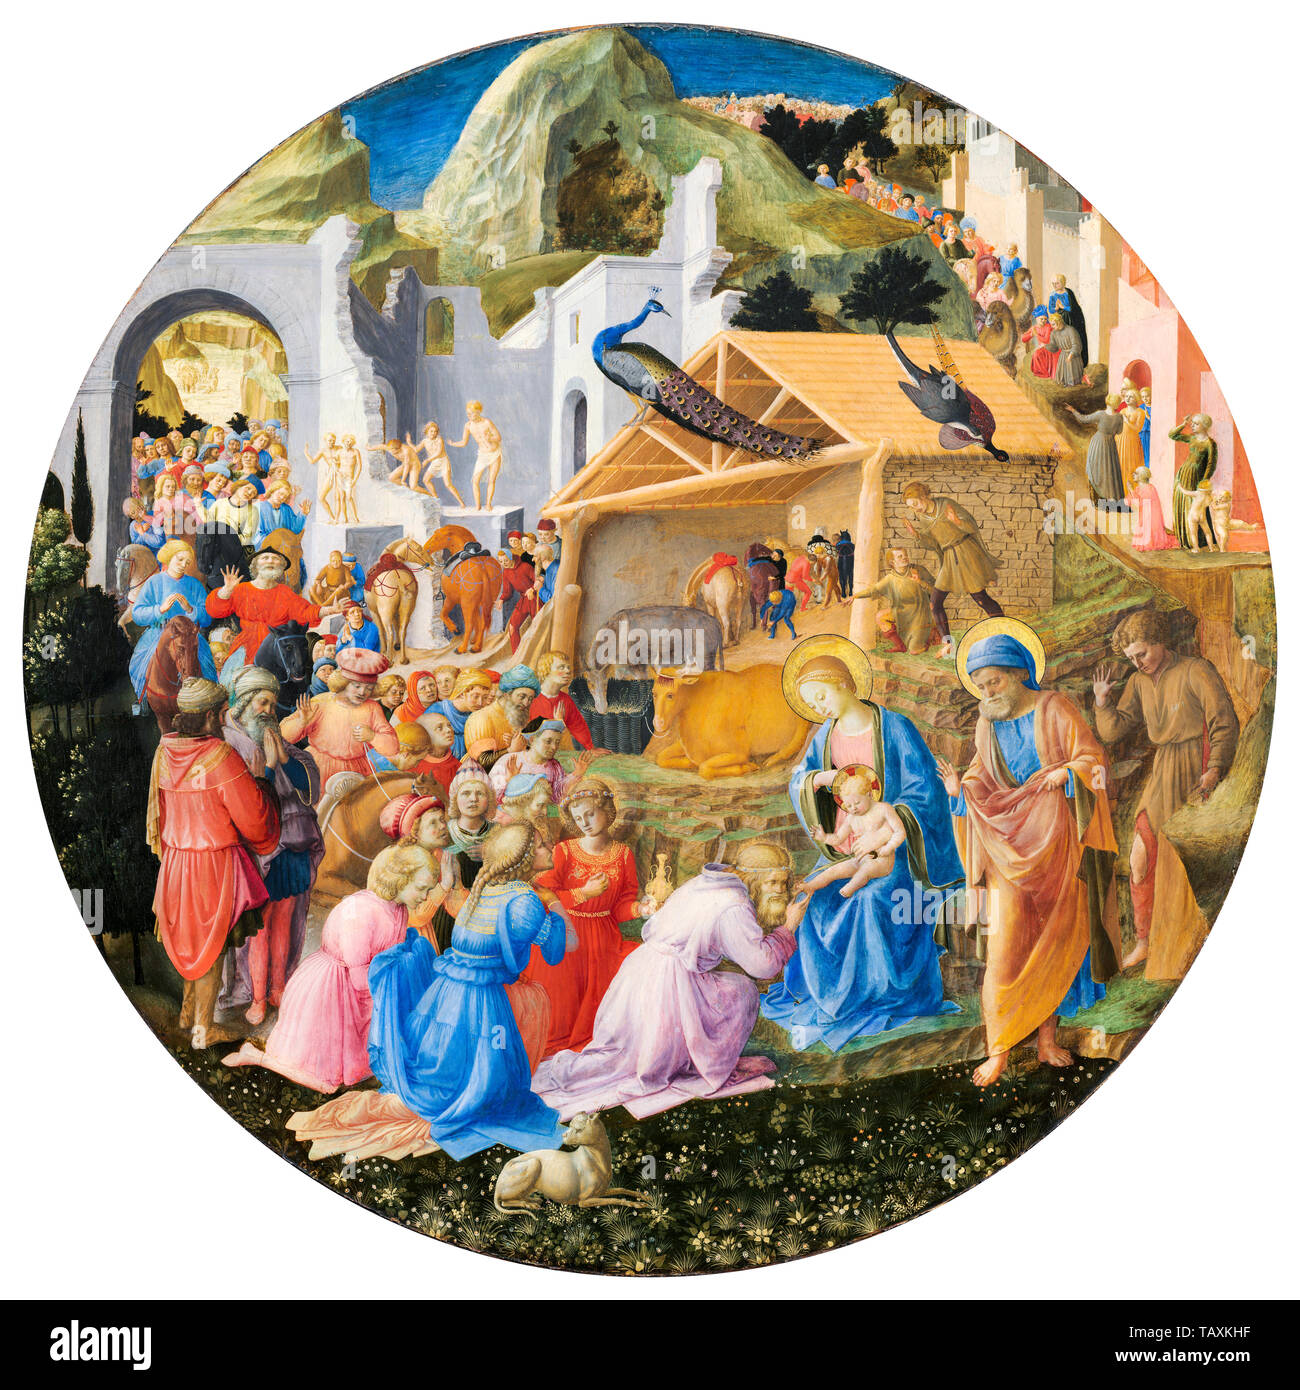 Fra Angelico, Fra Filippo Lippi, The Adoration of the Magi, painting, circa 1440 - Stock Image